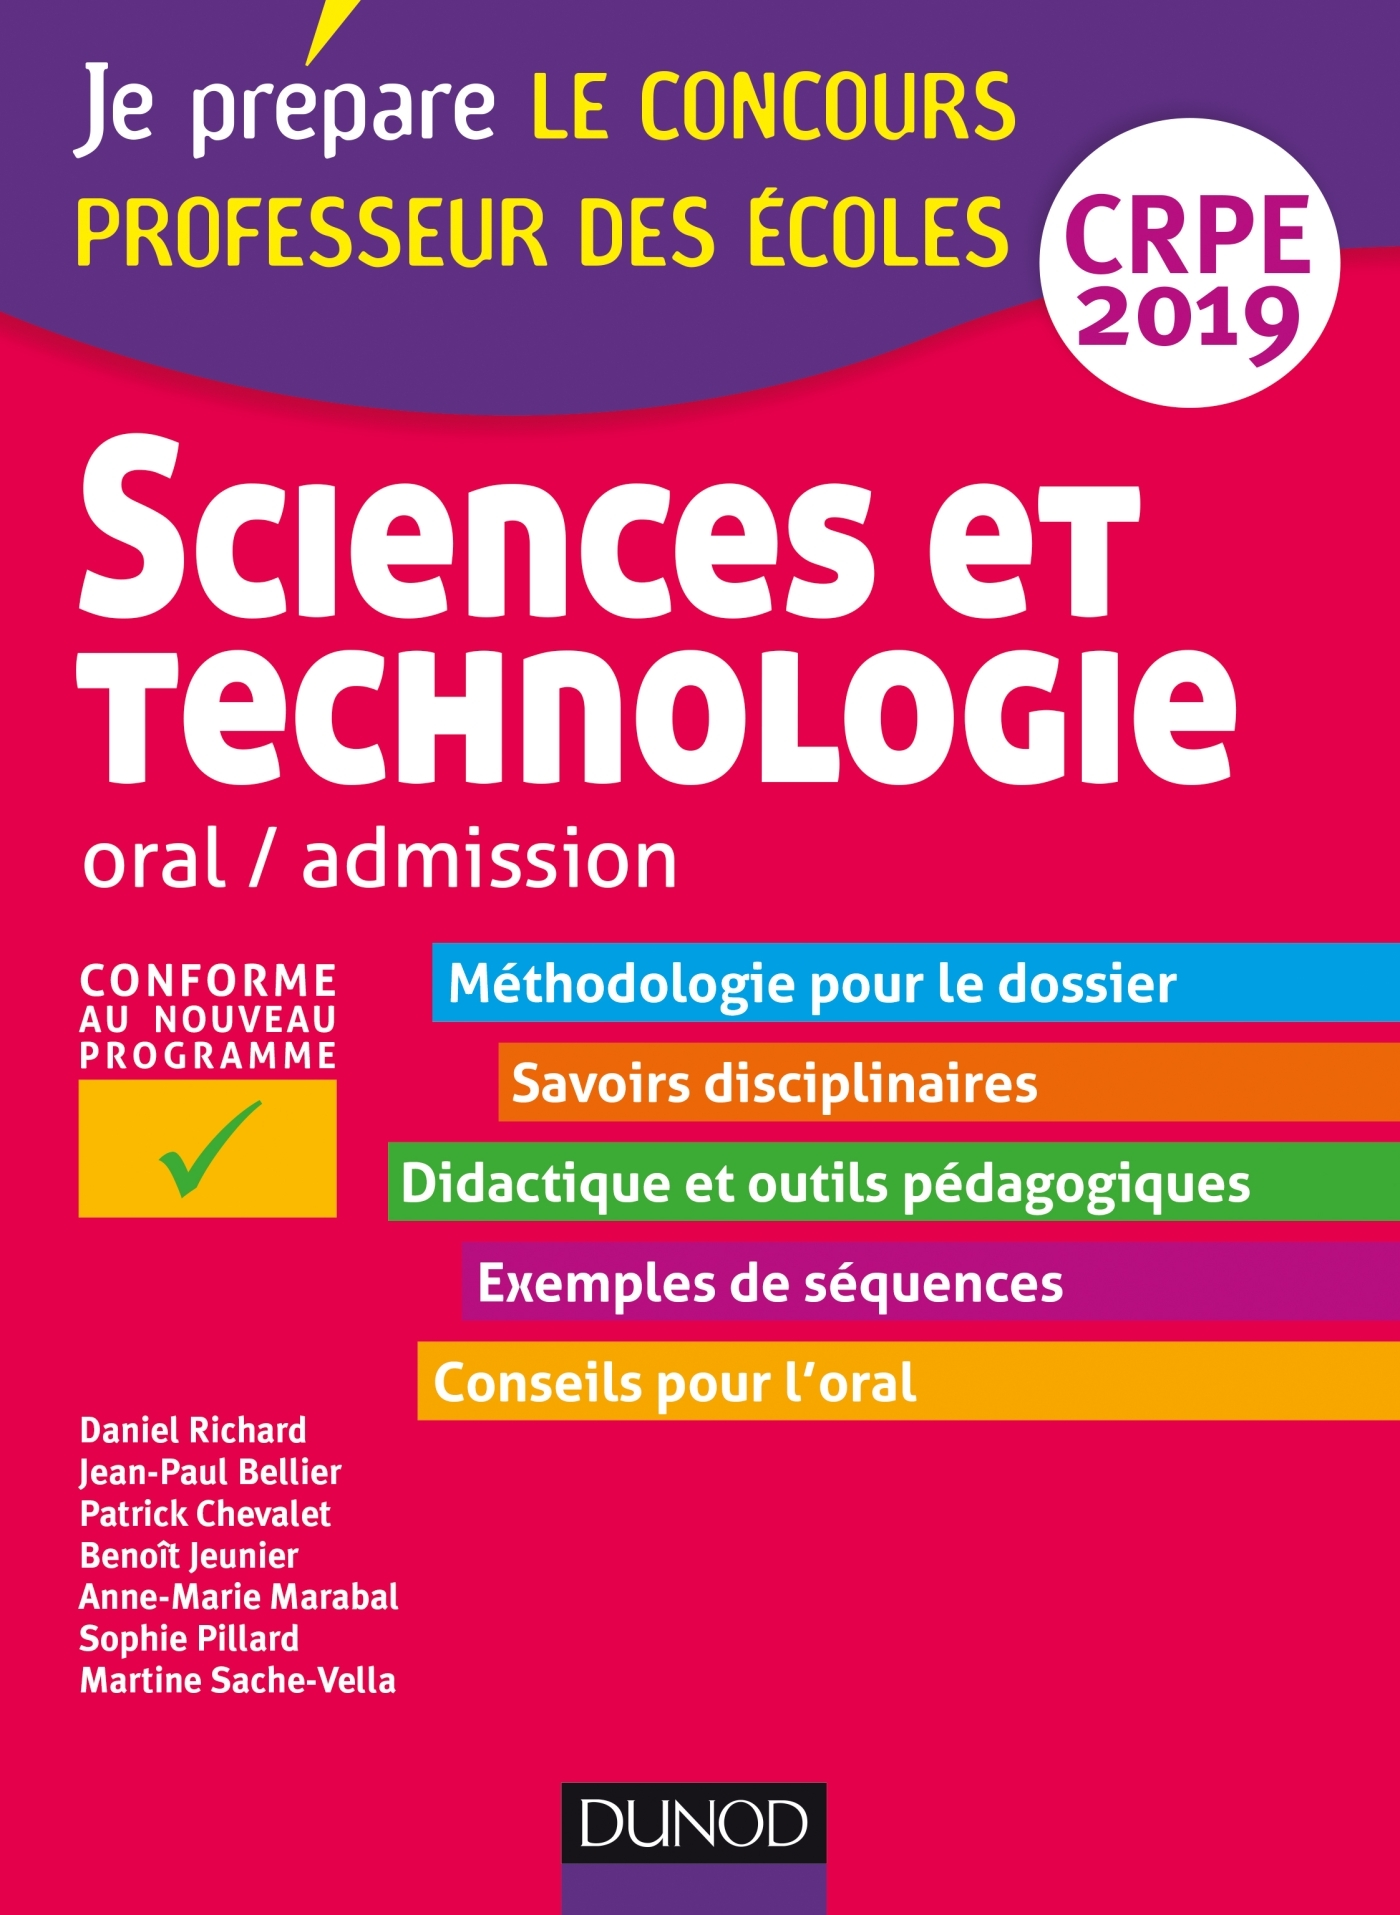 SCIENCES ET TECHNOLOGIE - ORAL, ADMISSION - CRPE 2019